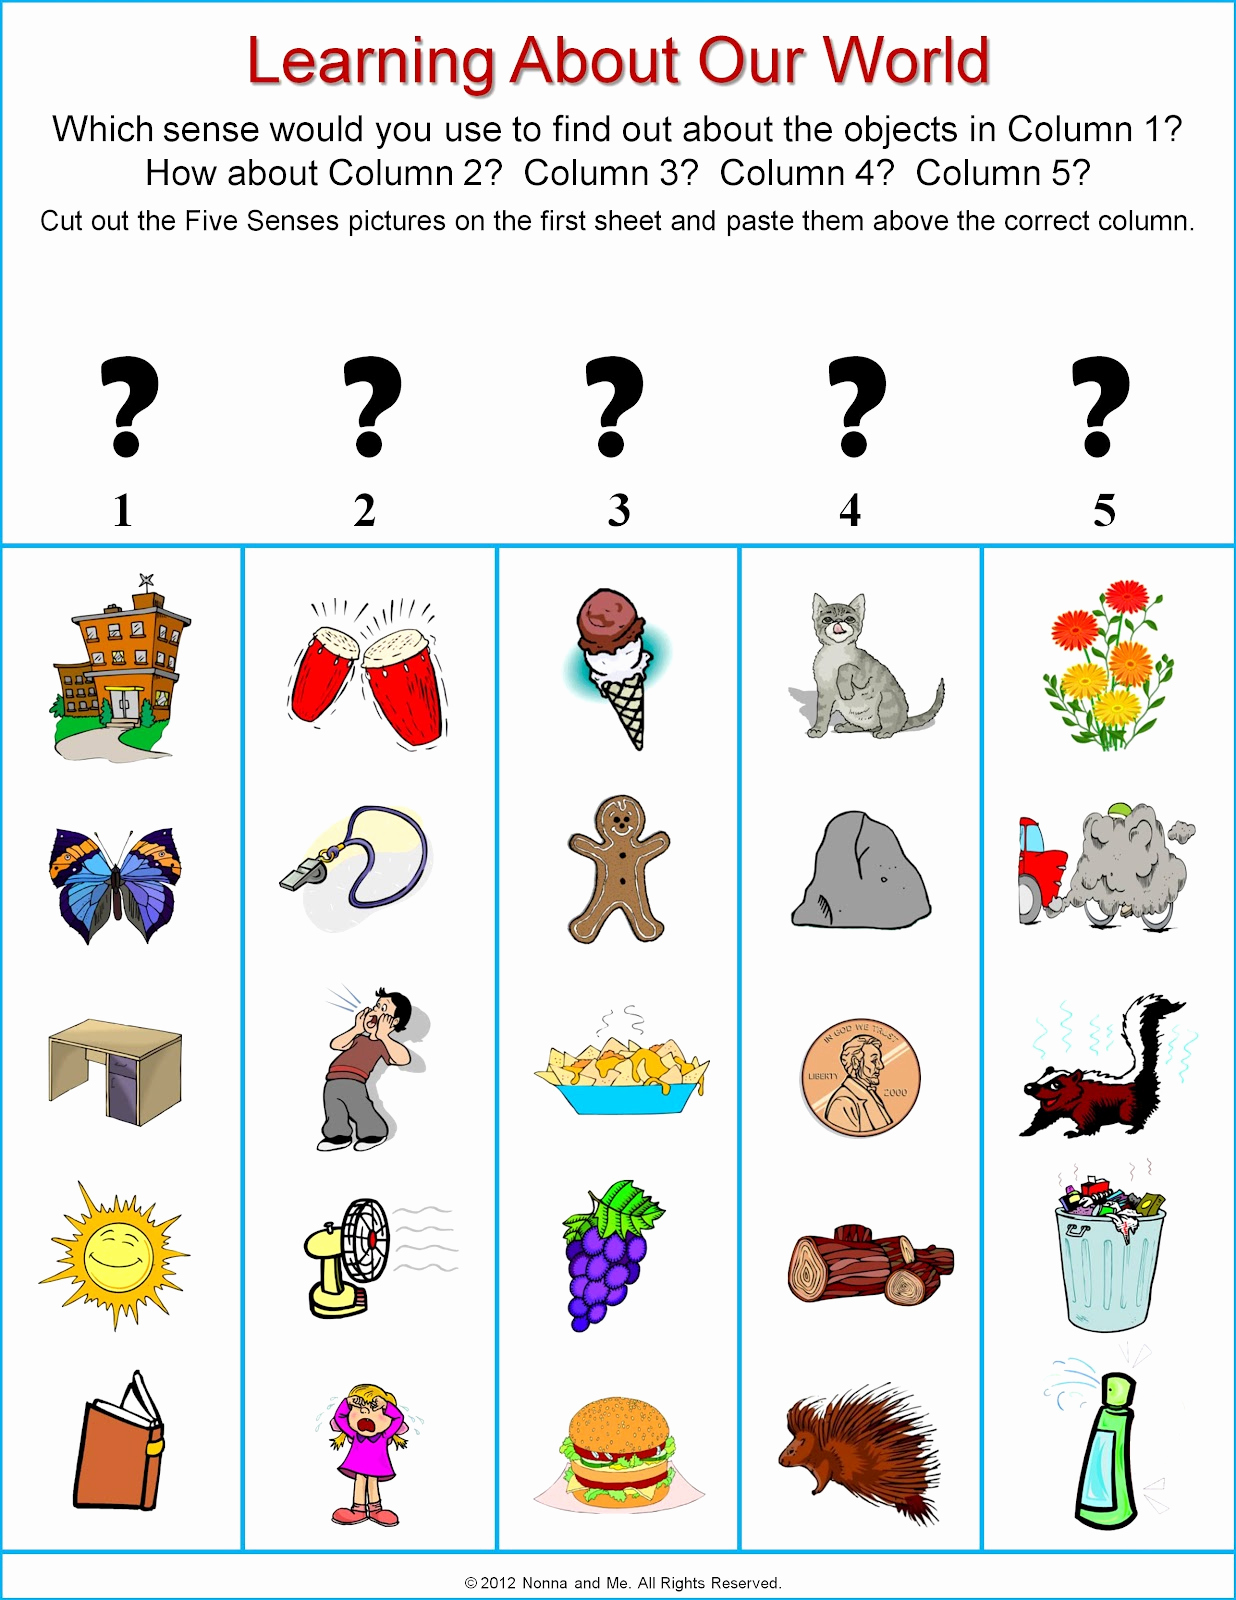 The Five Senses Worksheets Inspirational Nonna and Me the Five Senses Learning About Our World